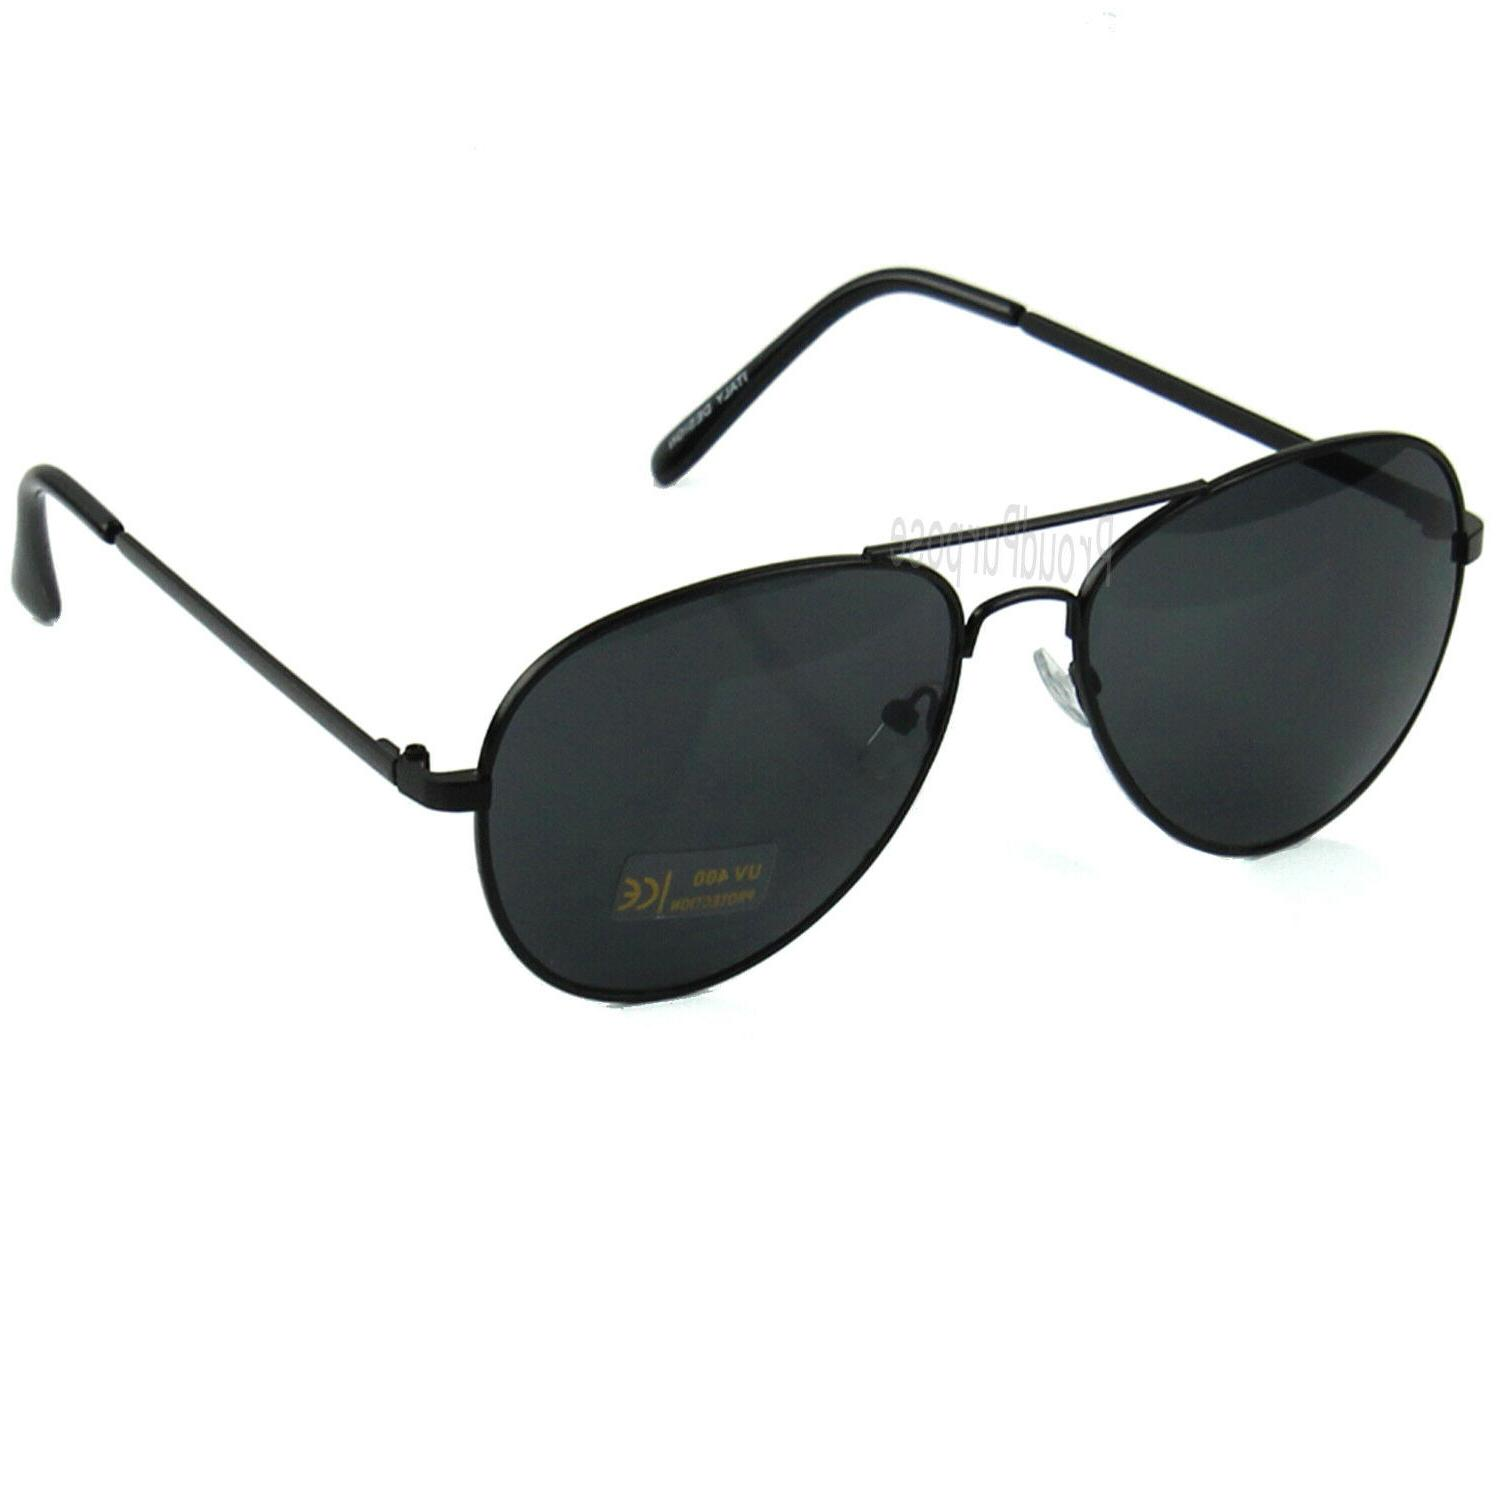 Fashion Sunglasses Vintage Retro Pilot